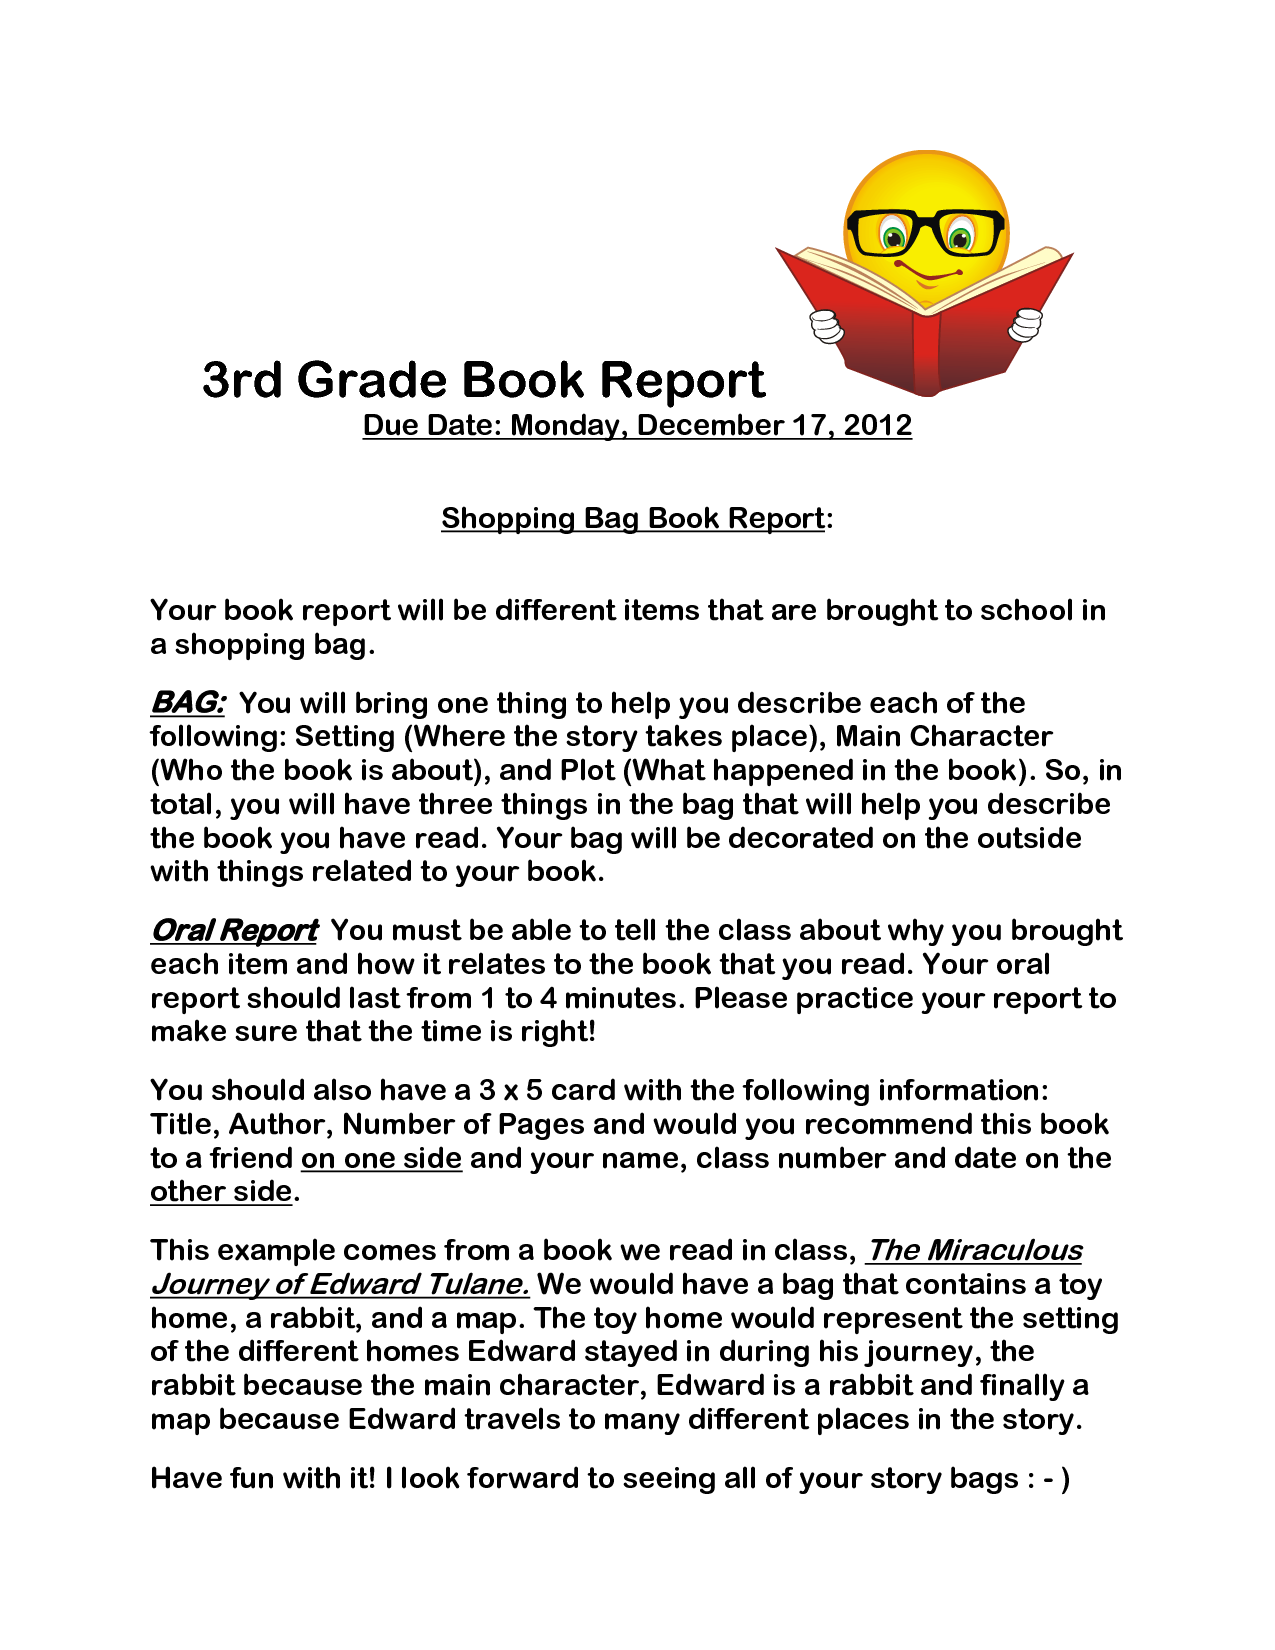 free book report template 3rd grade - Google Search | 1st - 3rd work ...